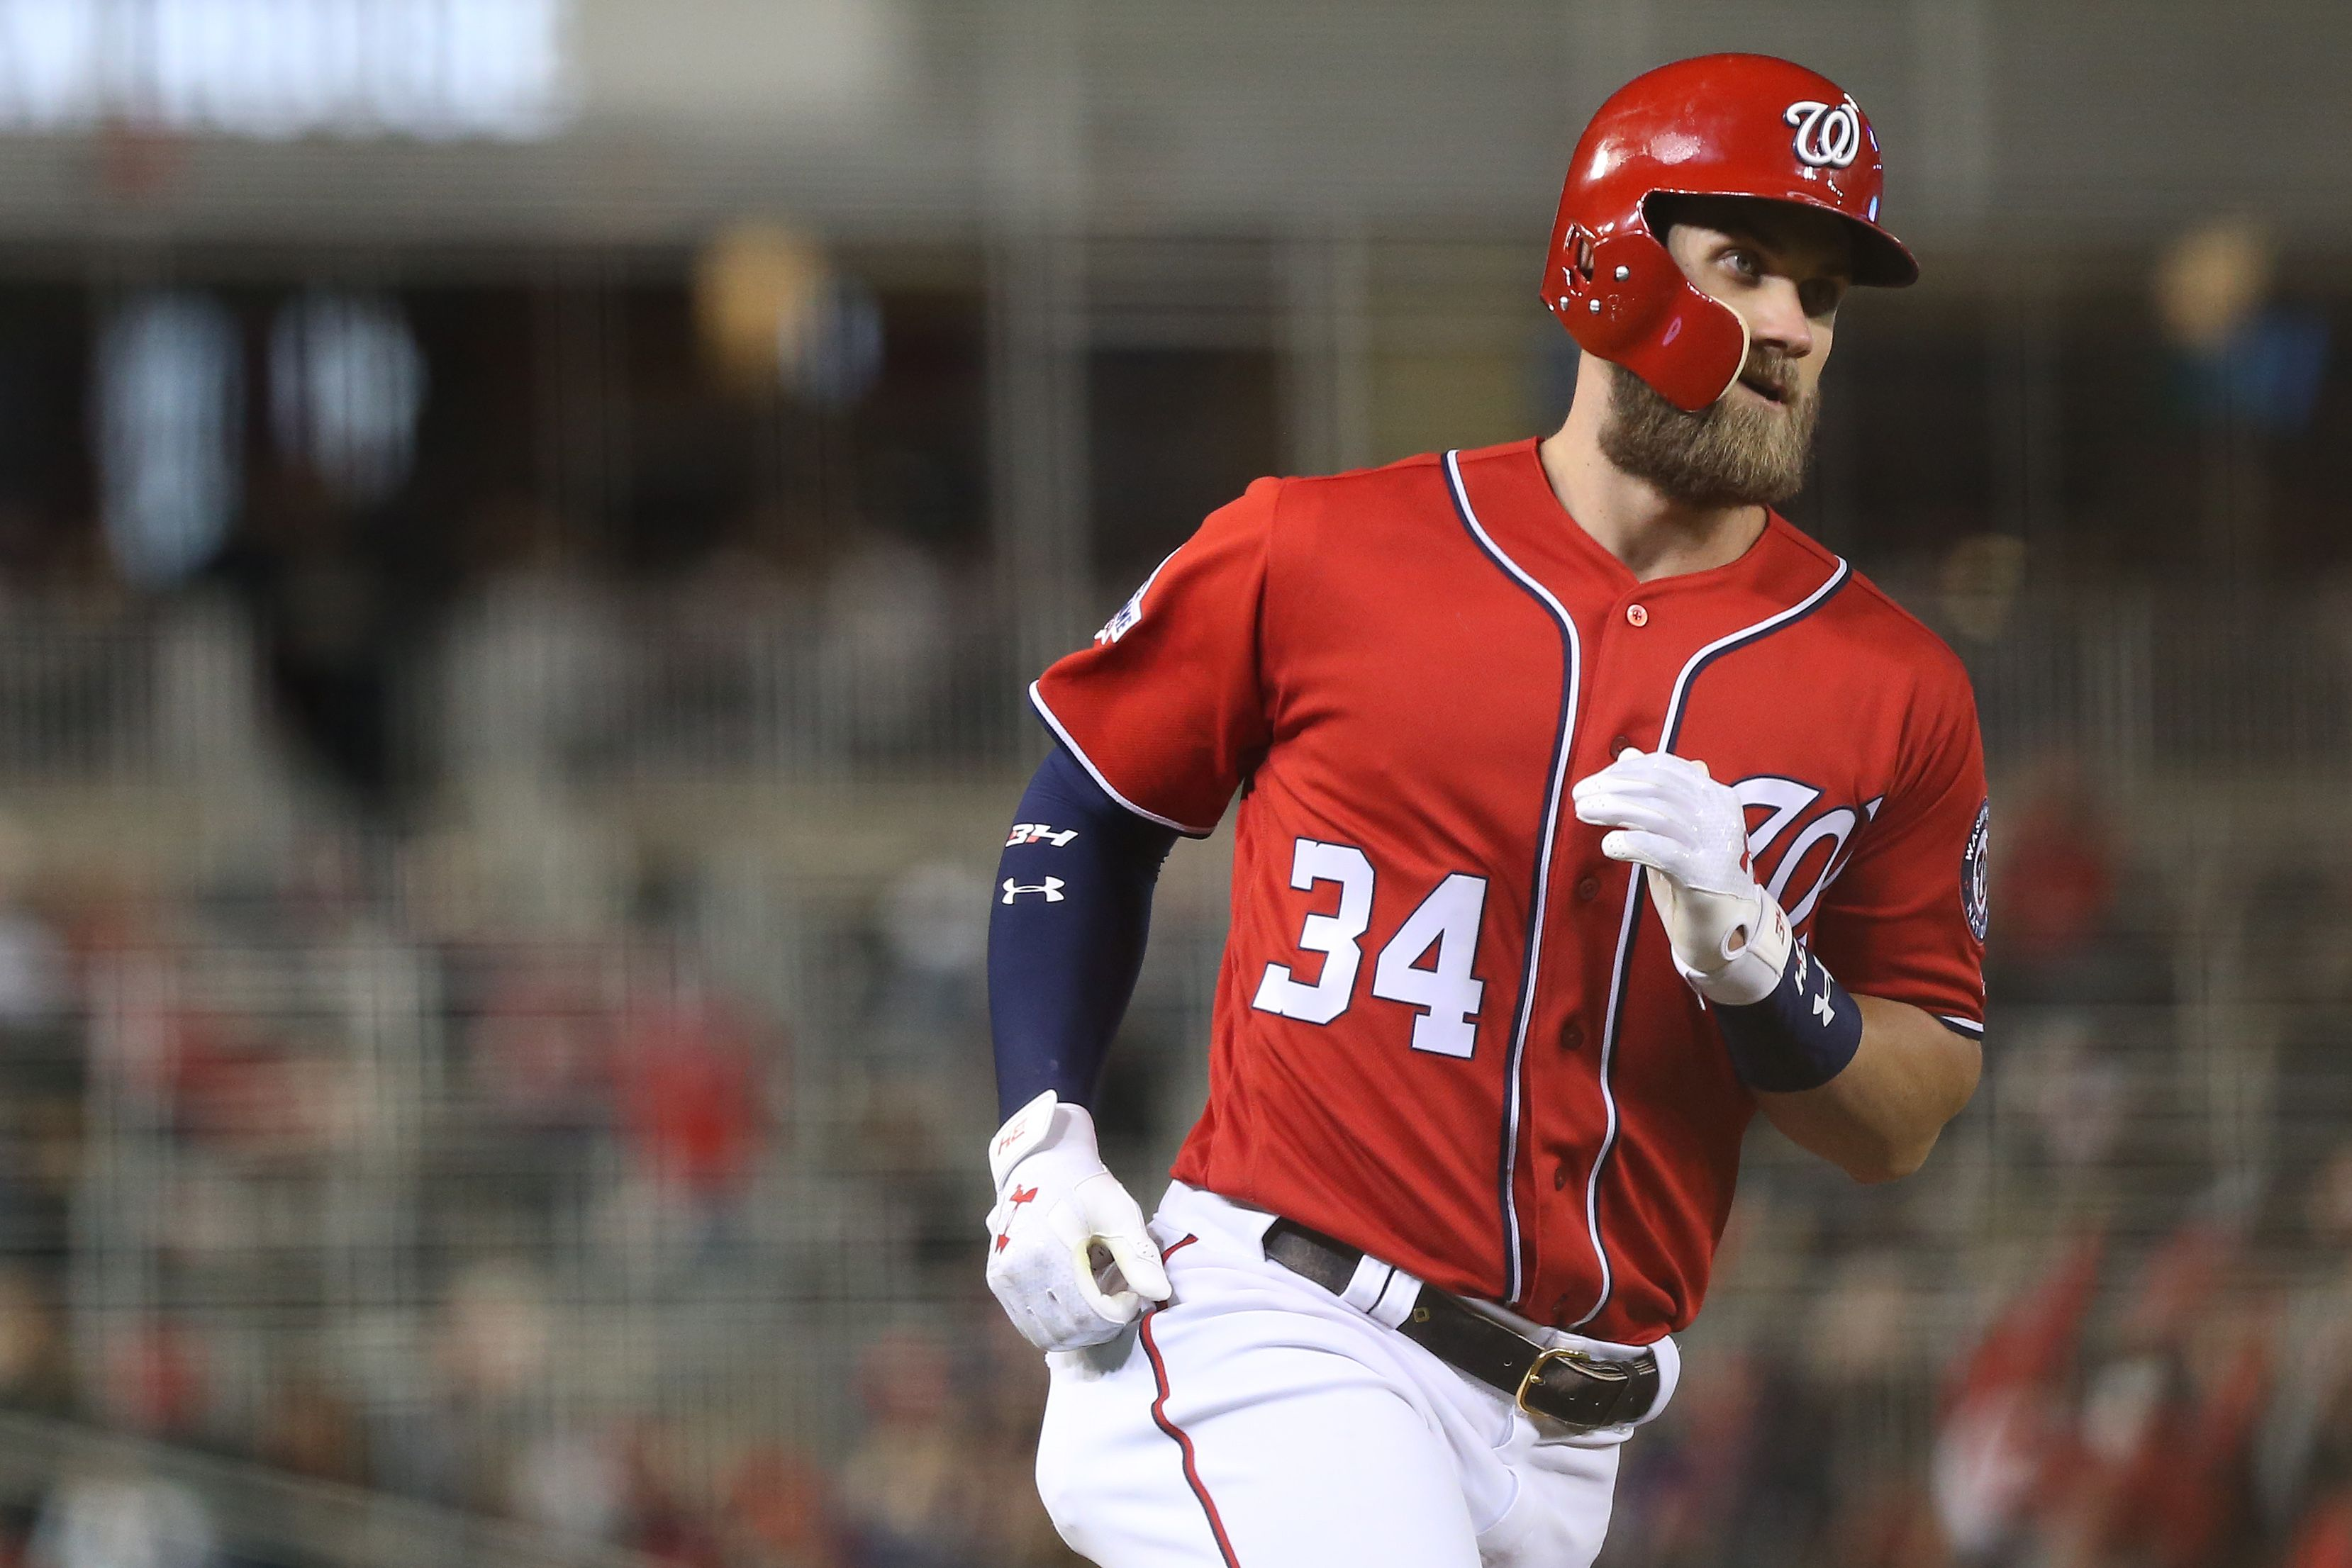 Home Run Derby field: Bryce Harper headlines slugging showcase